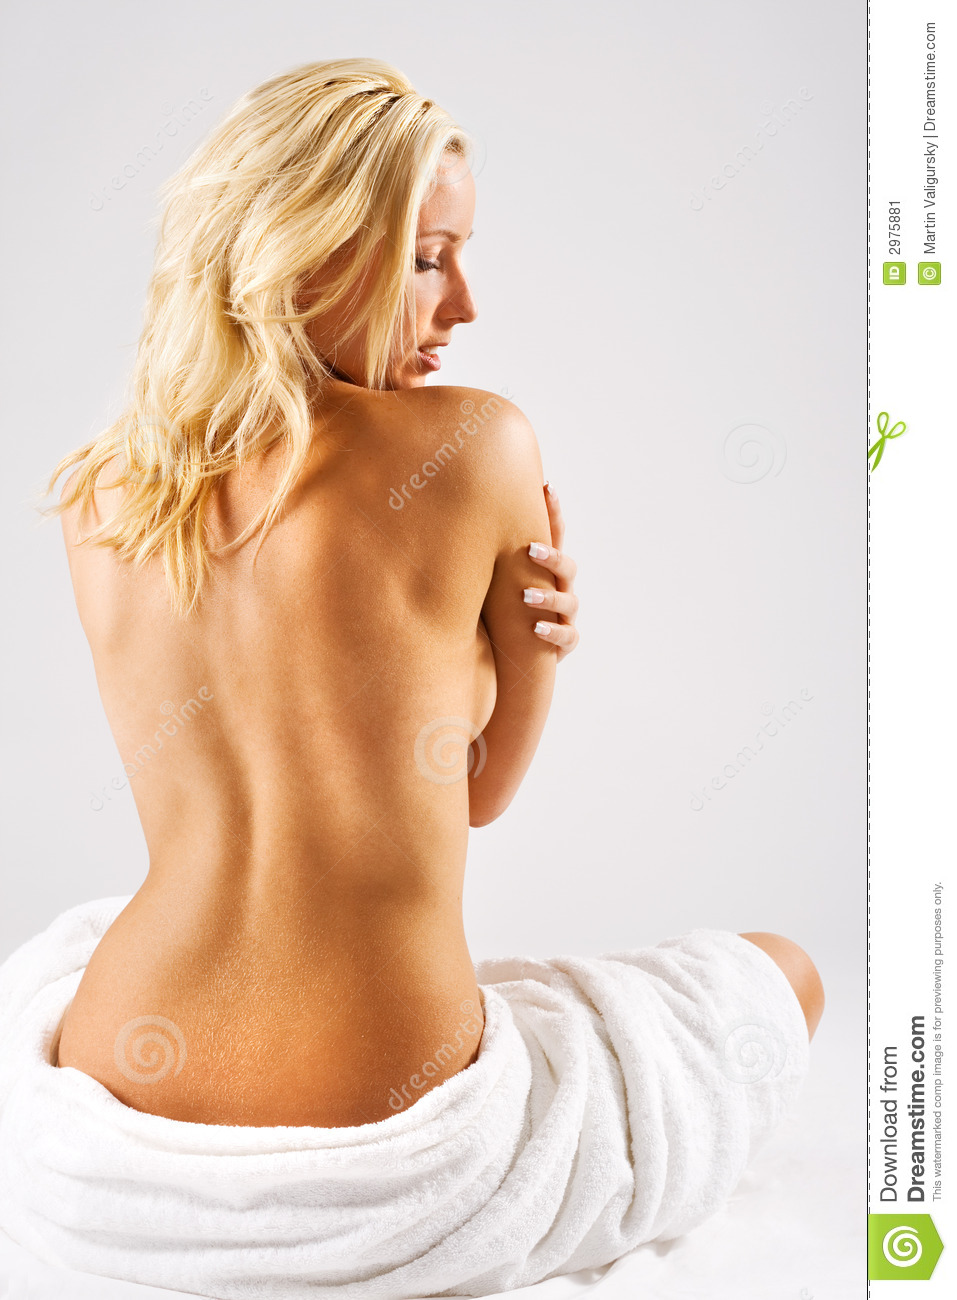 Blonde girl with bare back